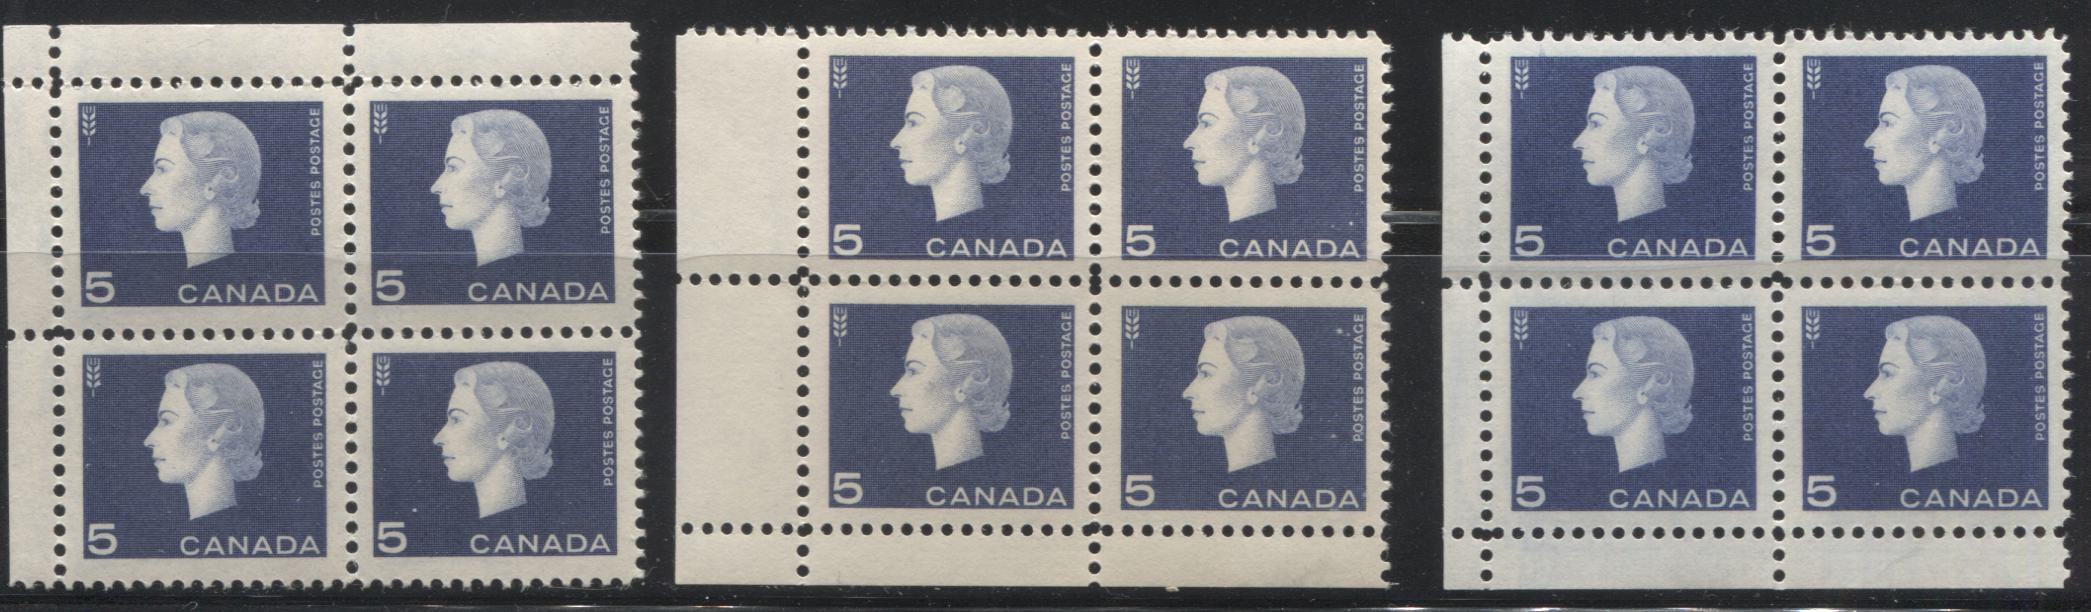 Canada #401-405 1c Brown - 5c Violet Blue Queen Elizabeth II, 1962-1967 Cameo Issue, Specialized Group of 15 Field Stock Corner Blocks, Showing Different Perfs, Shades, and Gums